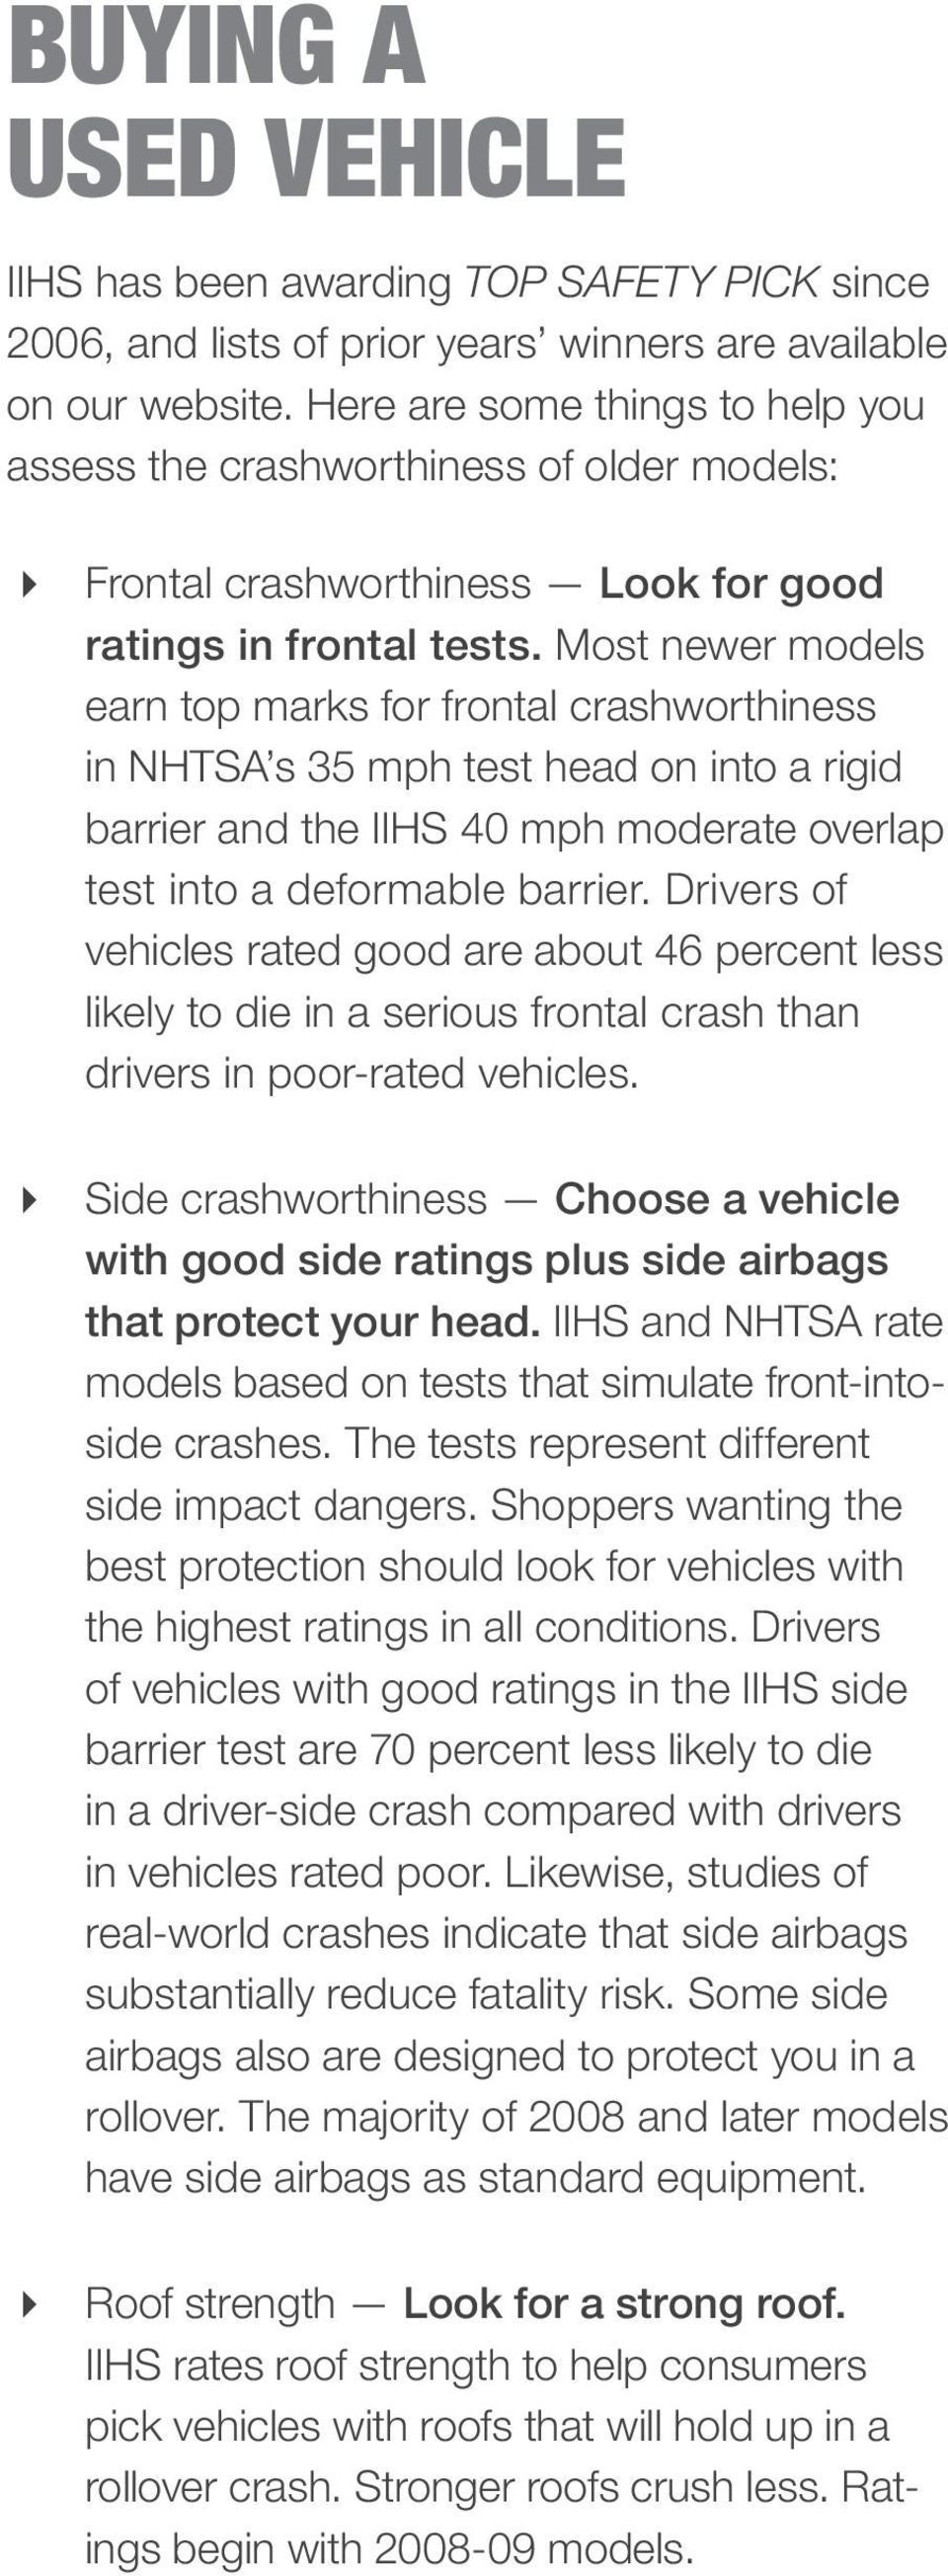 Most newer models earn top marks for frontal crashworthiness in NHTSA s 35 mph test head on into a rigid barrier and the IIHS 40 mph moderate overlap test into a deformable barrier.